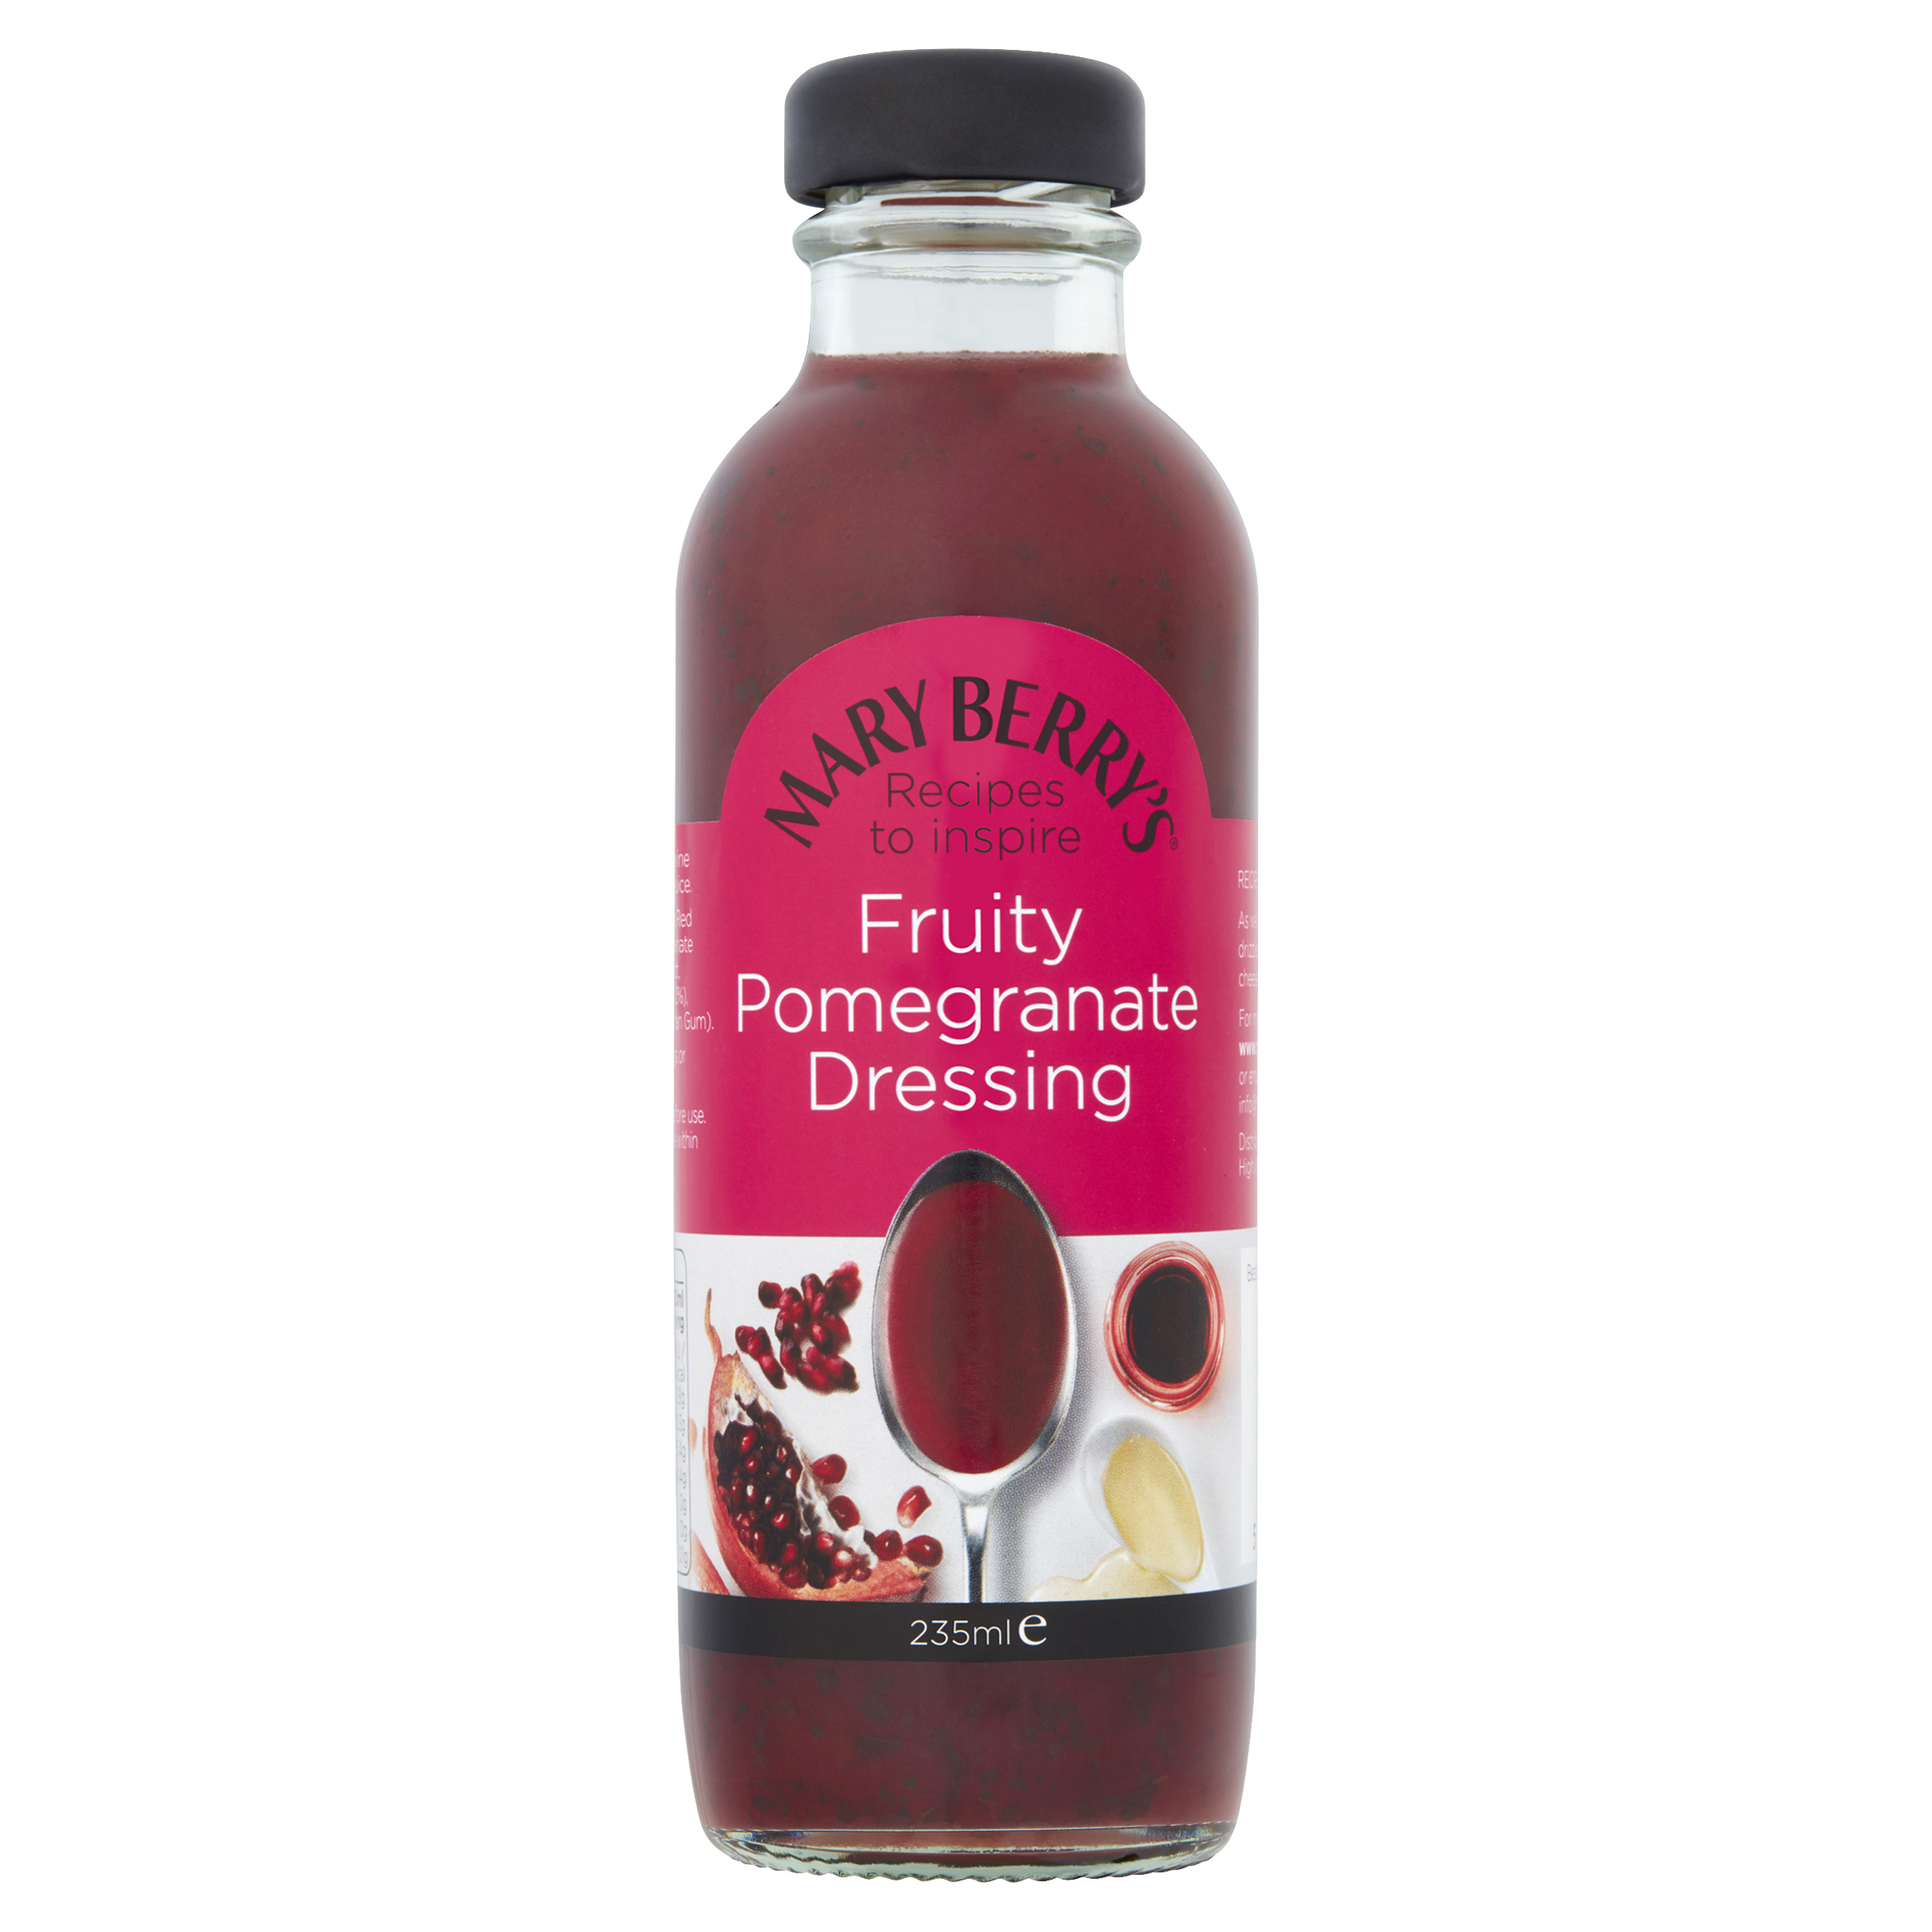 Fruity pomegranate Dressing